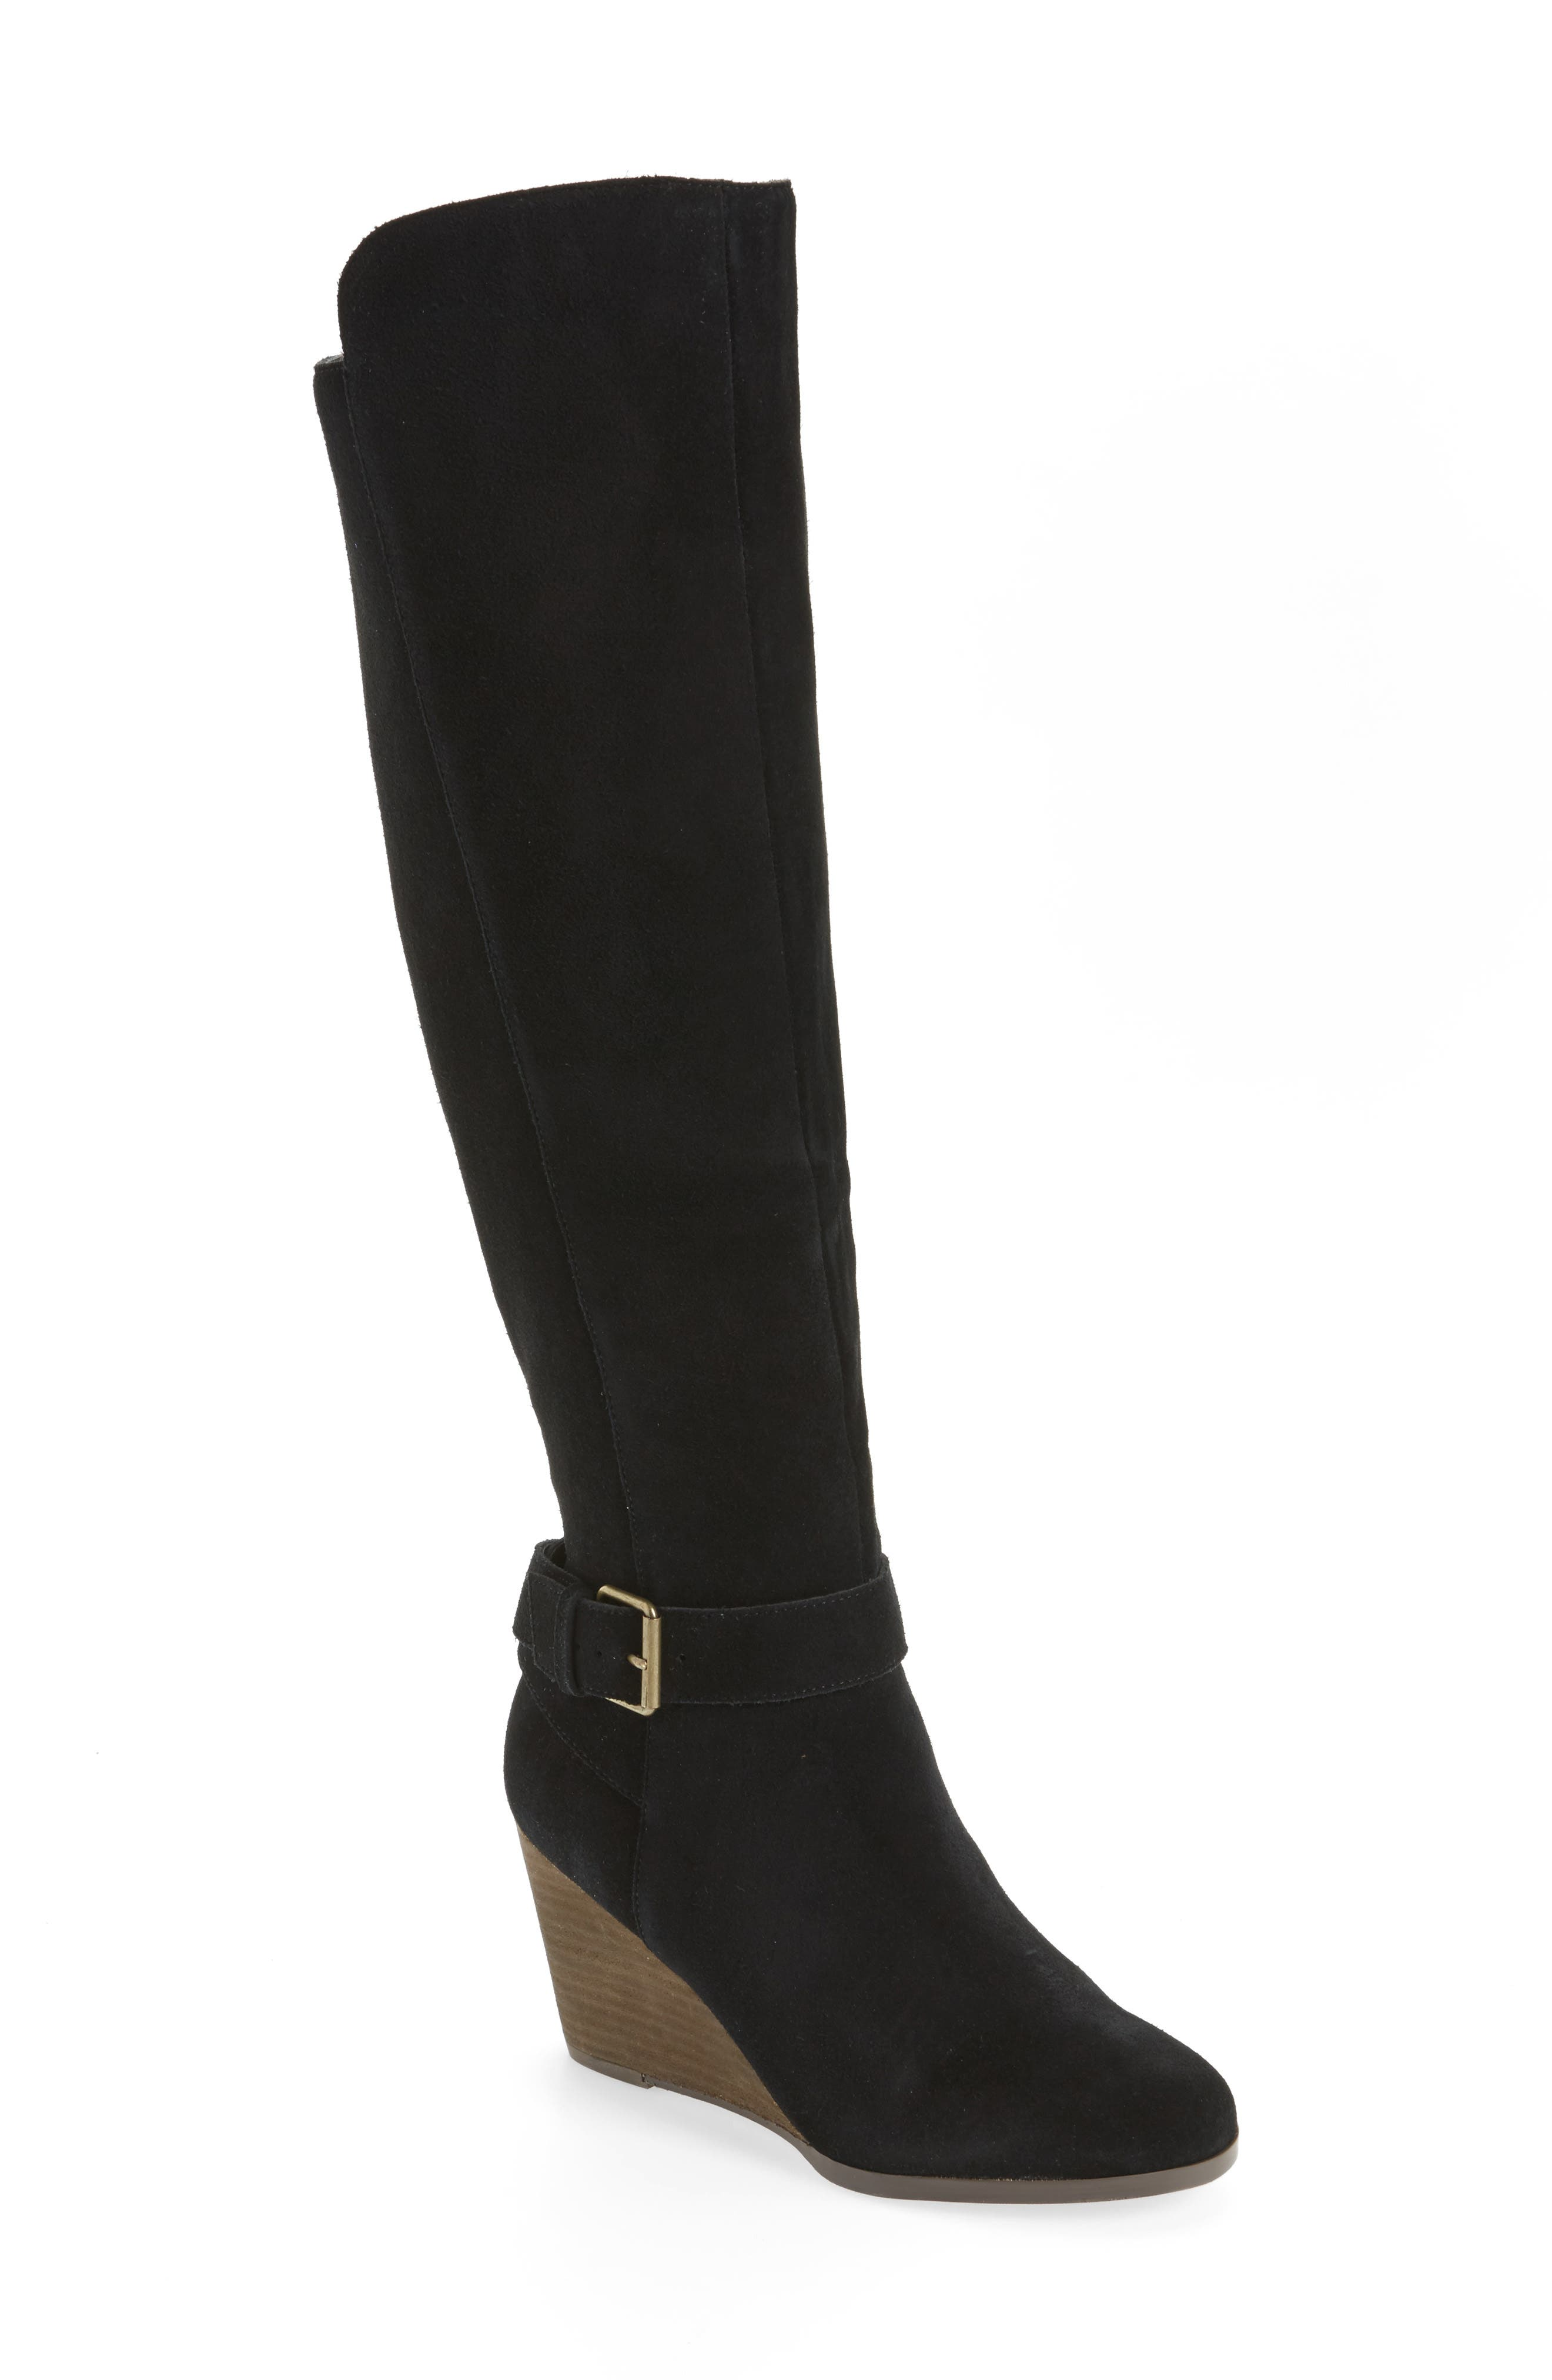 Main Image - Sole Society Paloma Over the Knee Boot (Women)